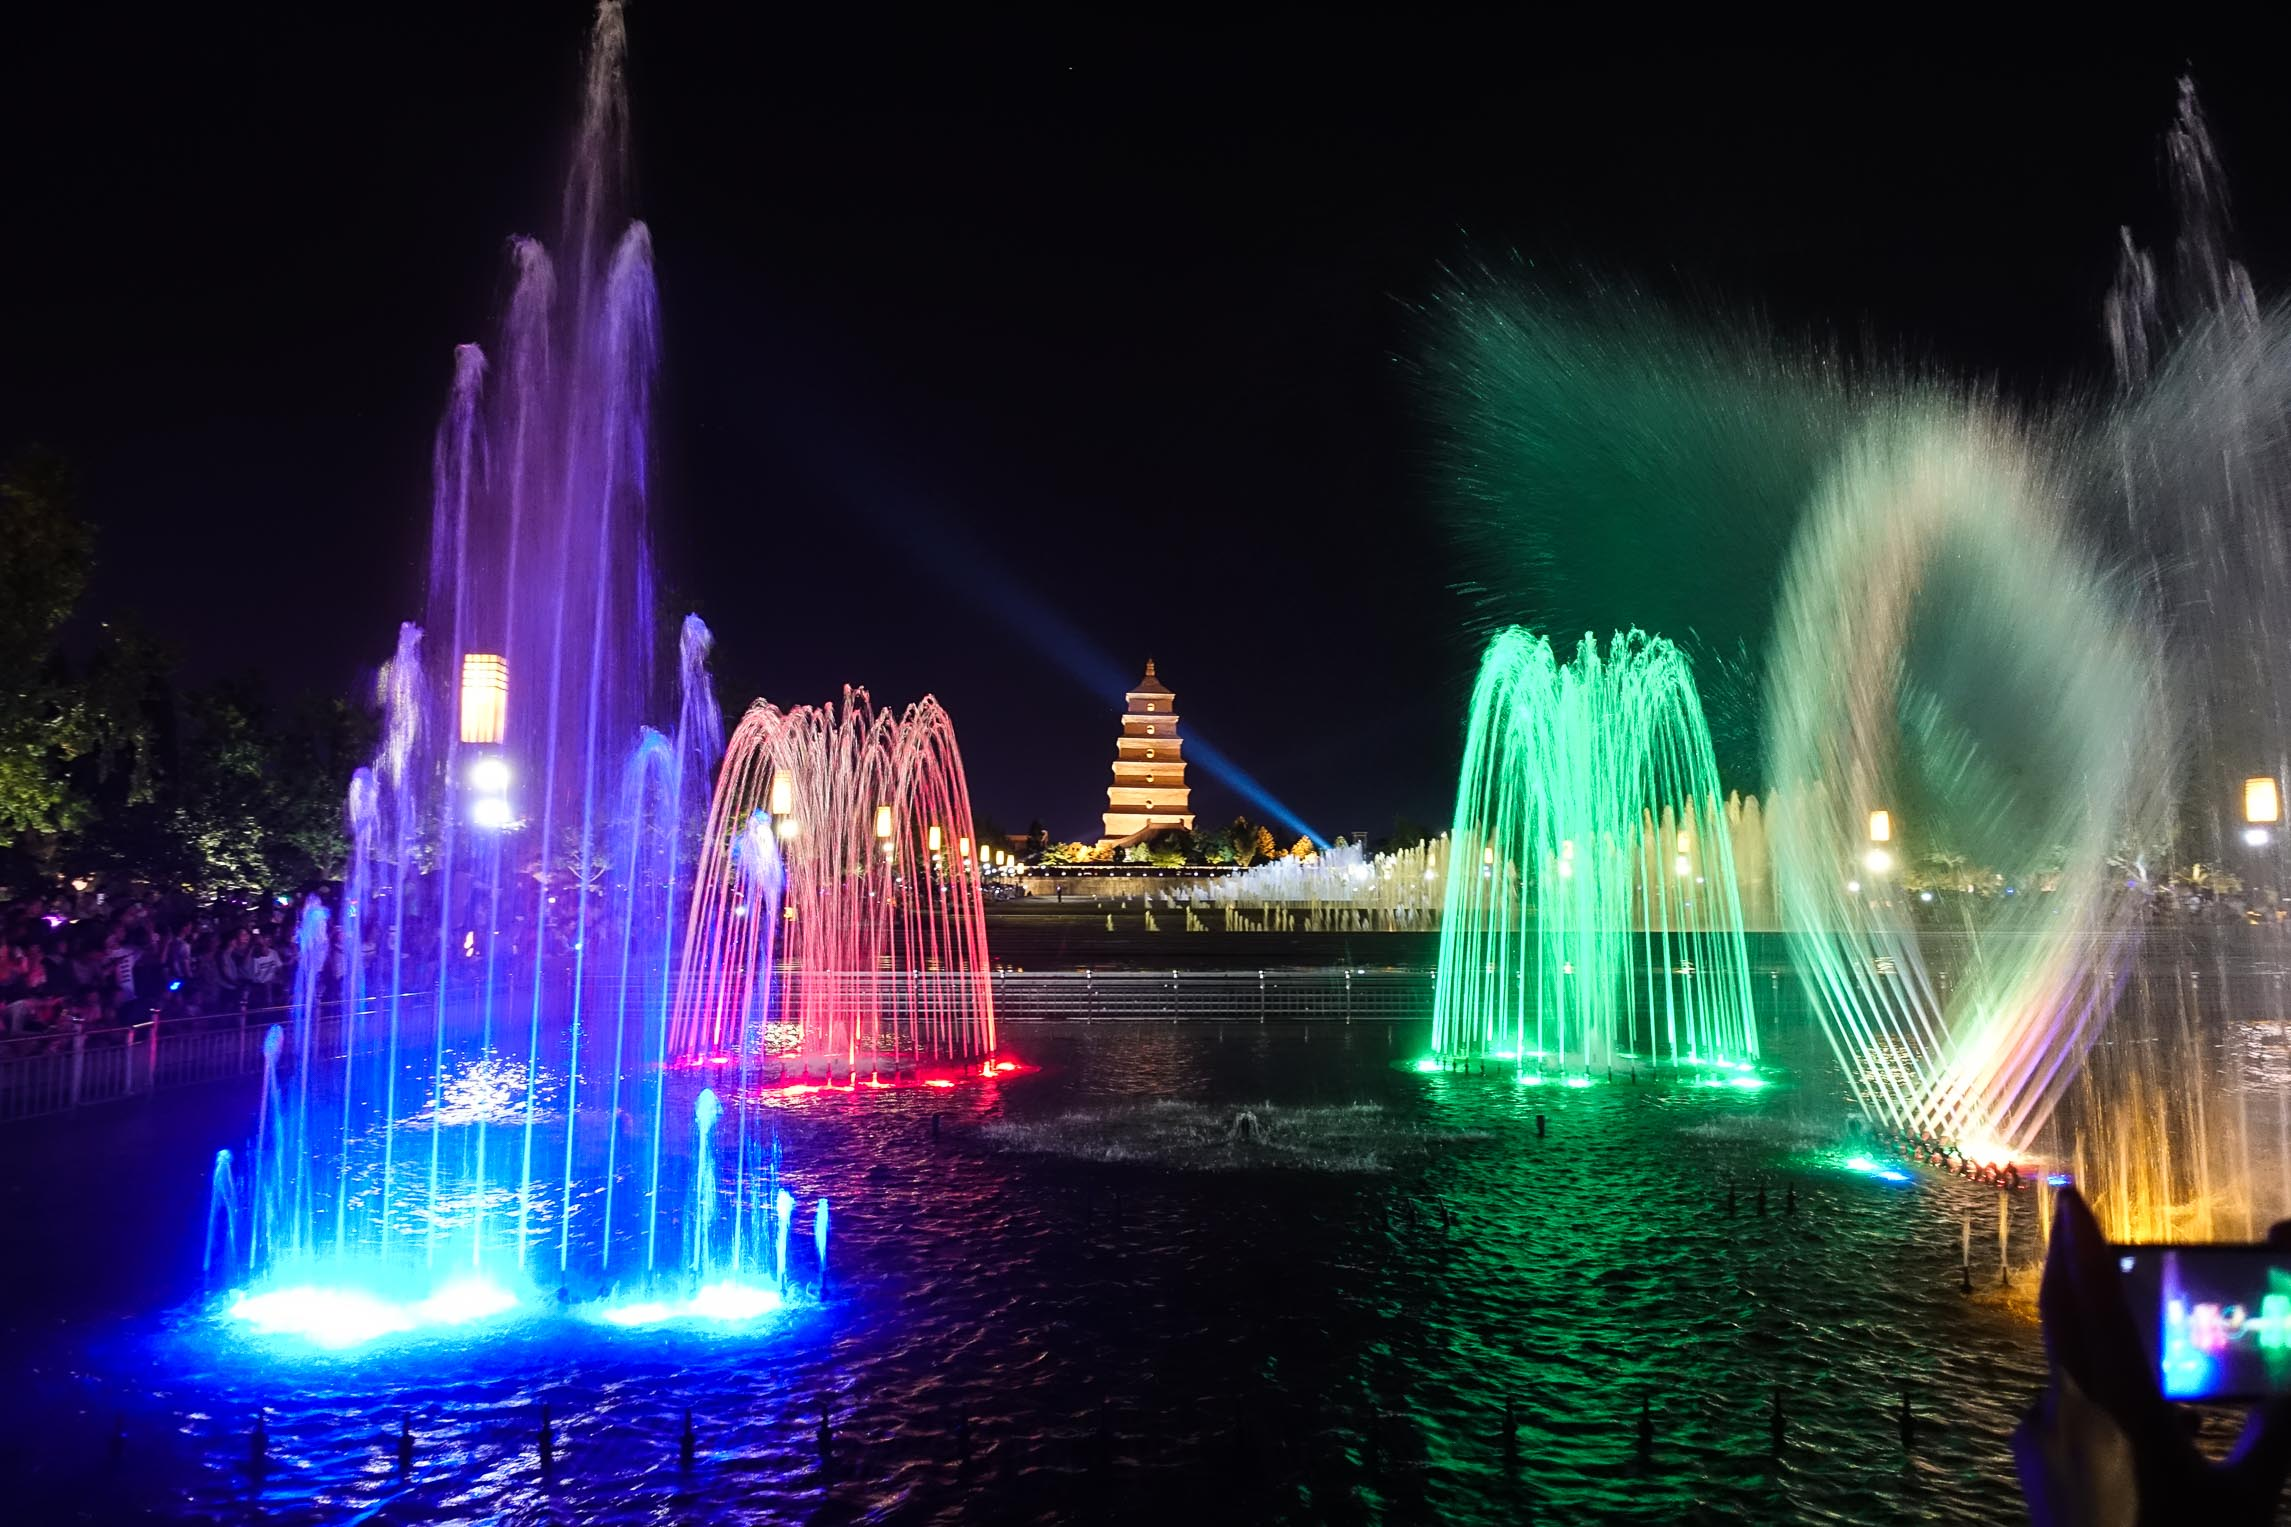 Musical fountains in front of the Giant Wild Goose Pagoda